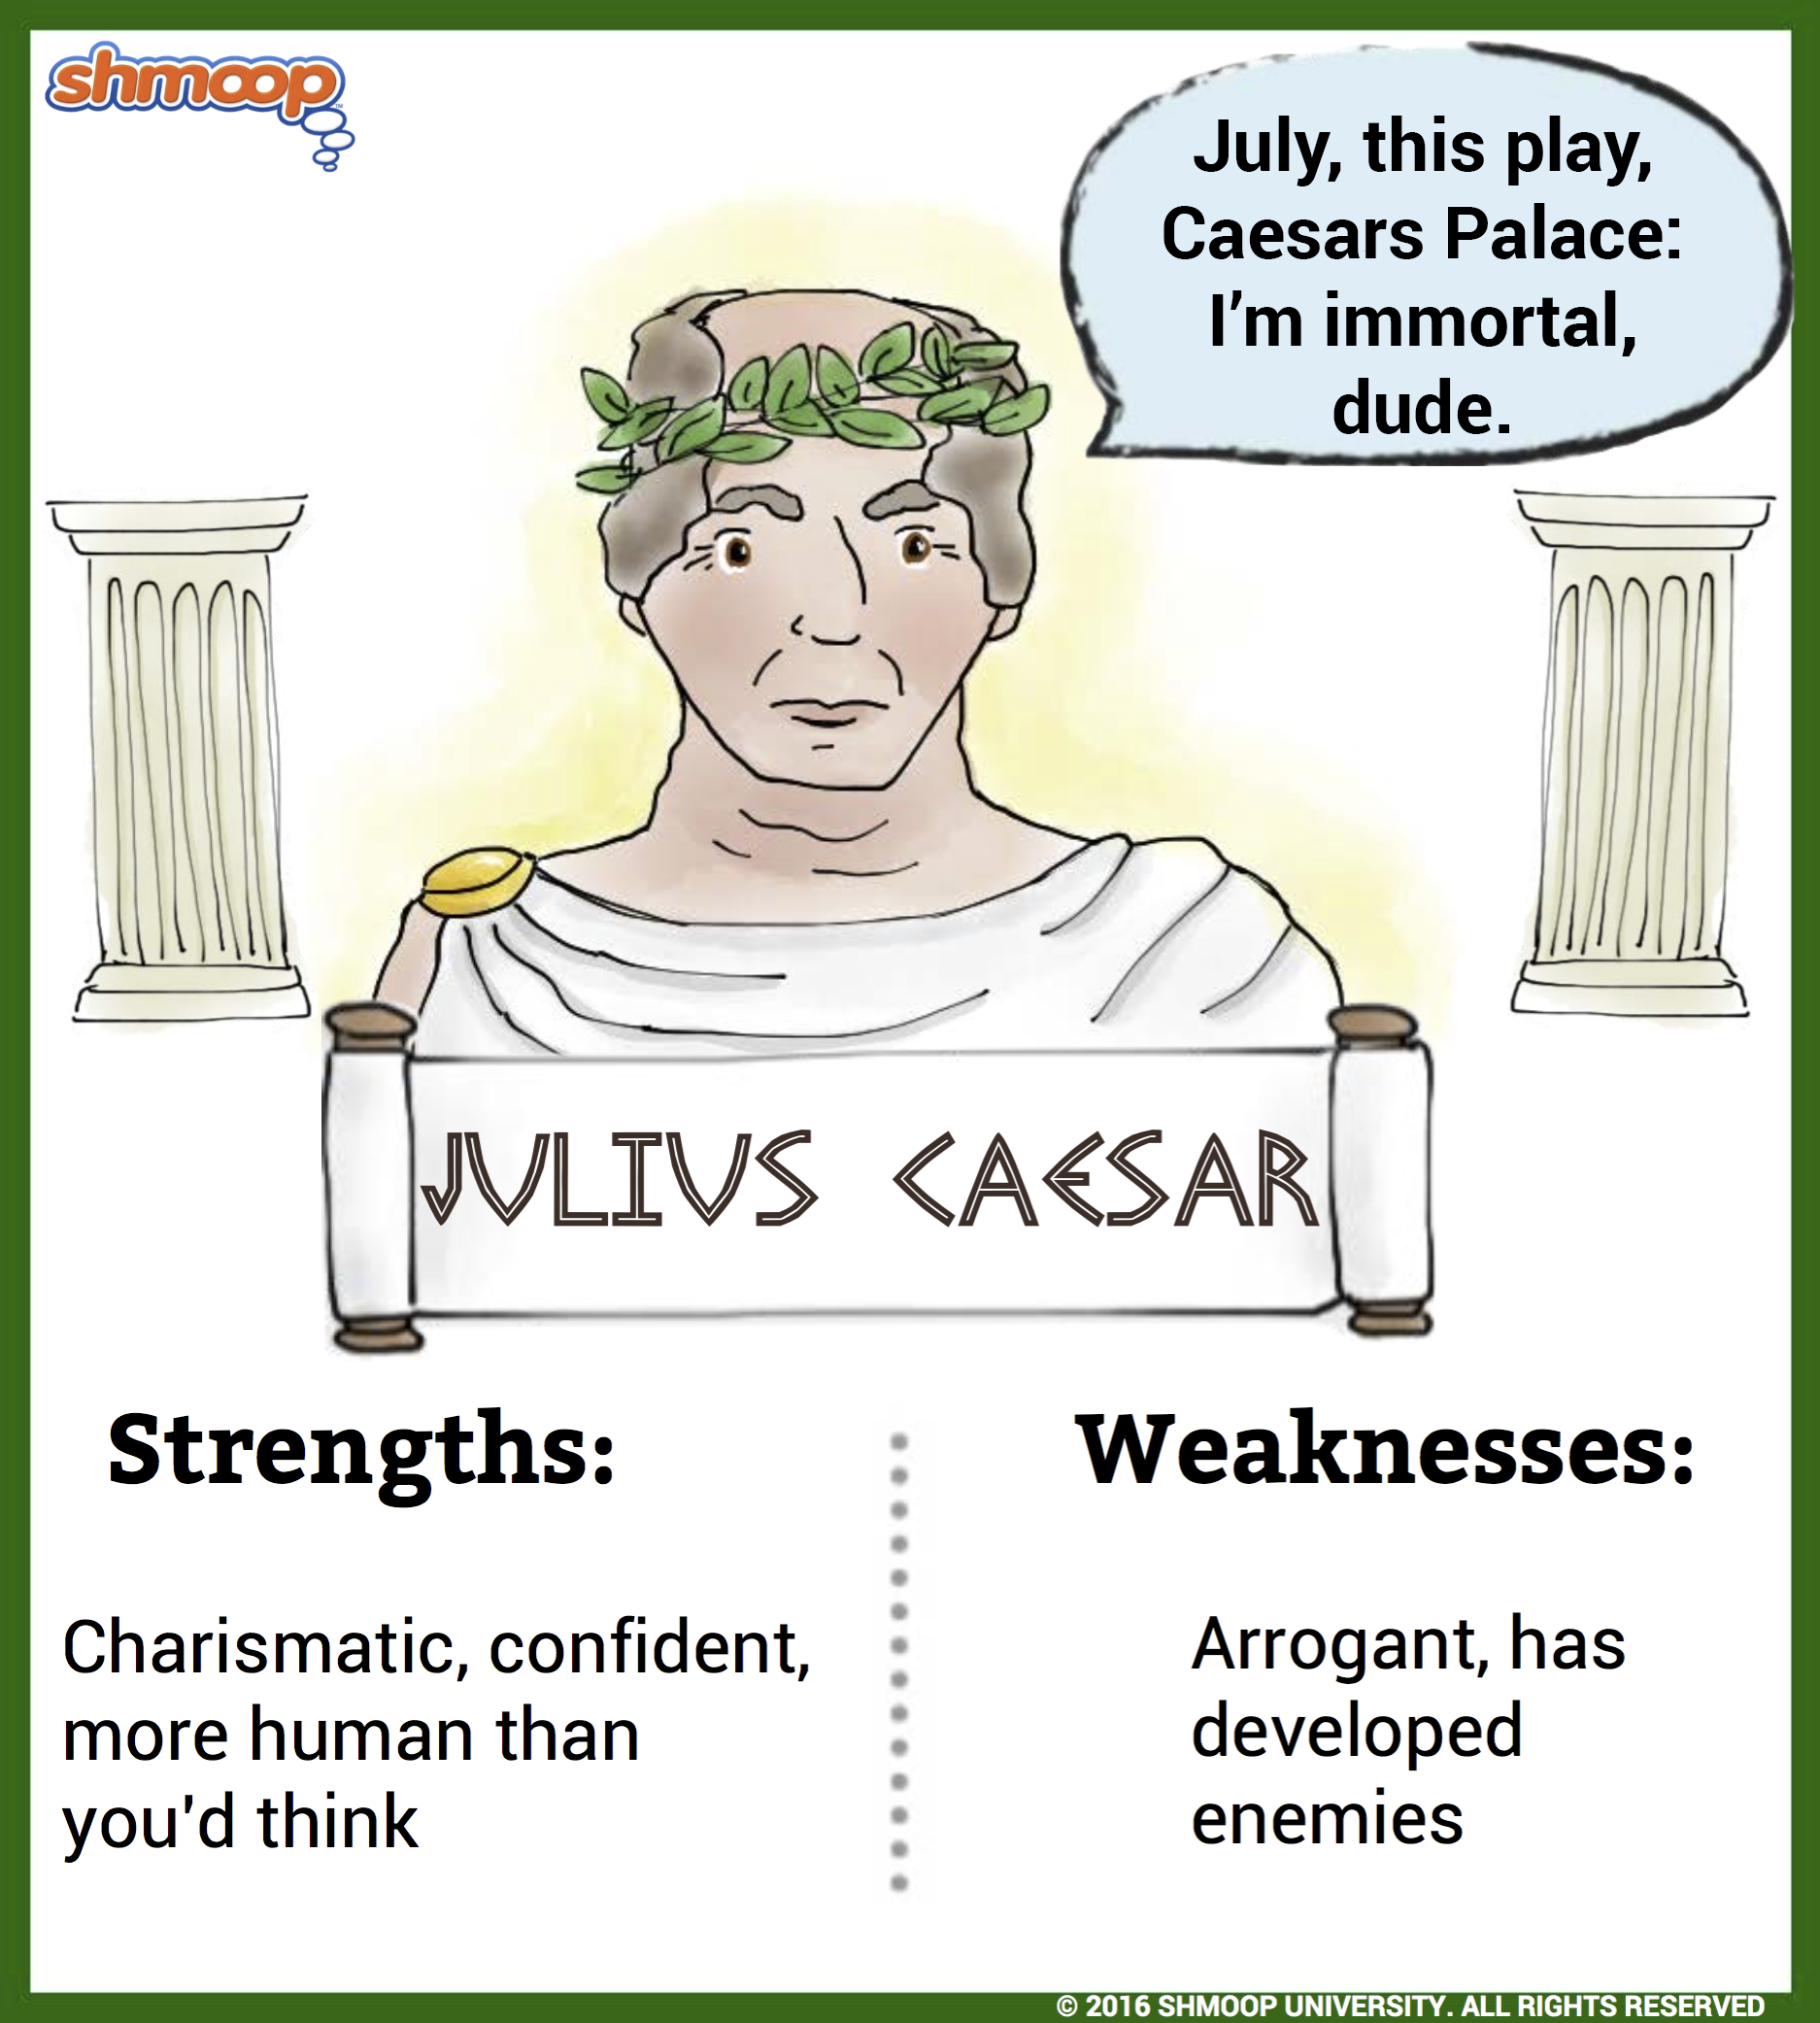 a character analysis of brutus in julius caesar Quick answer marcus brutus is the tragic hero of shakespeare's tragedy of julius caesar because he embodies aristotle's elements of a tragic hero: he has a tragic flaw, he experiences a fall from high to low fortune and.